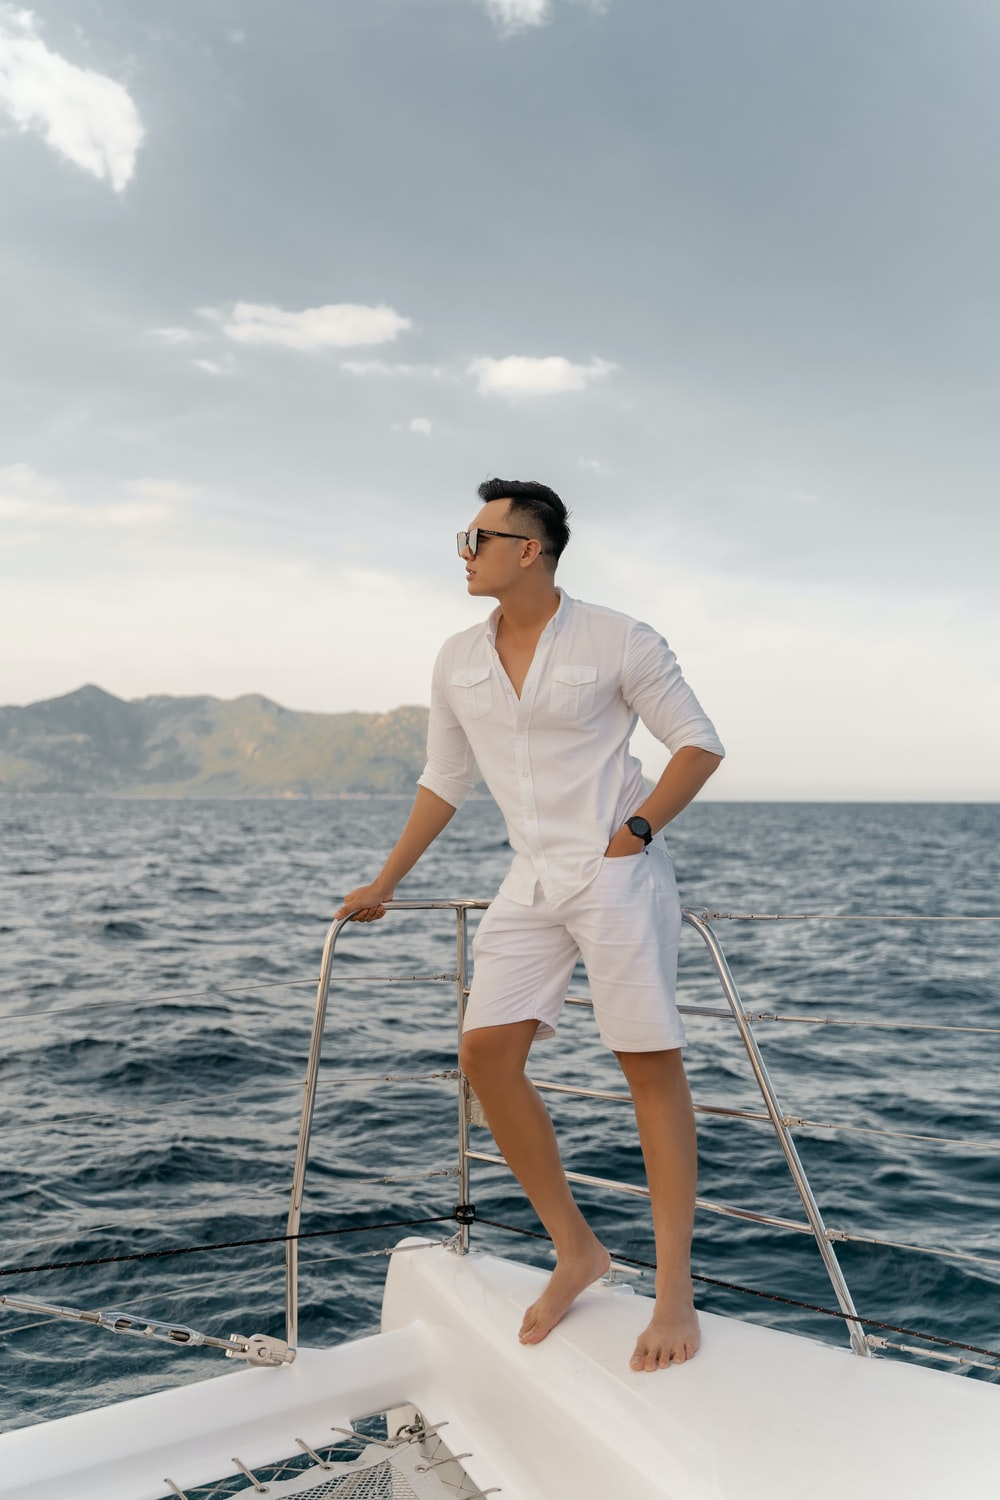 man in white polo shirt and white shorts wearing black sunglasses standing on boat during daytime